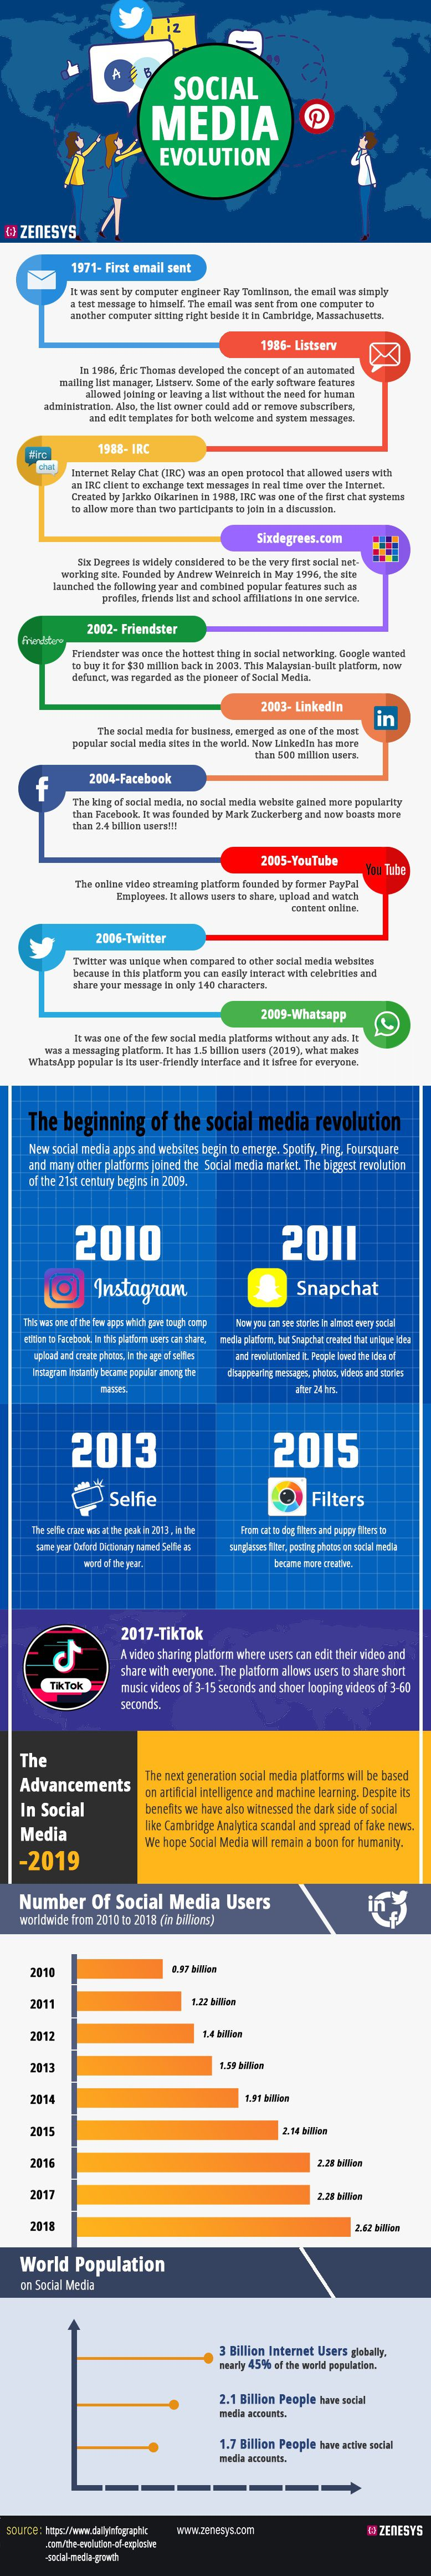 social media history infographic